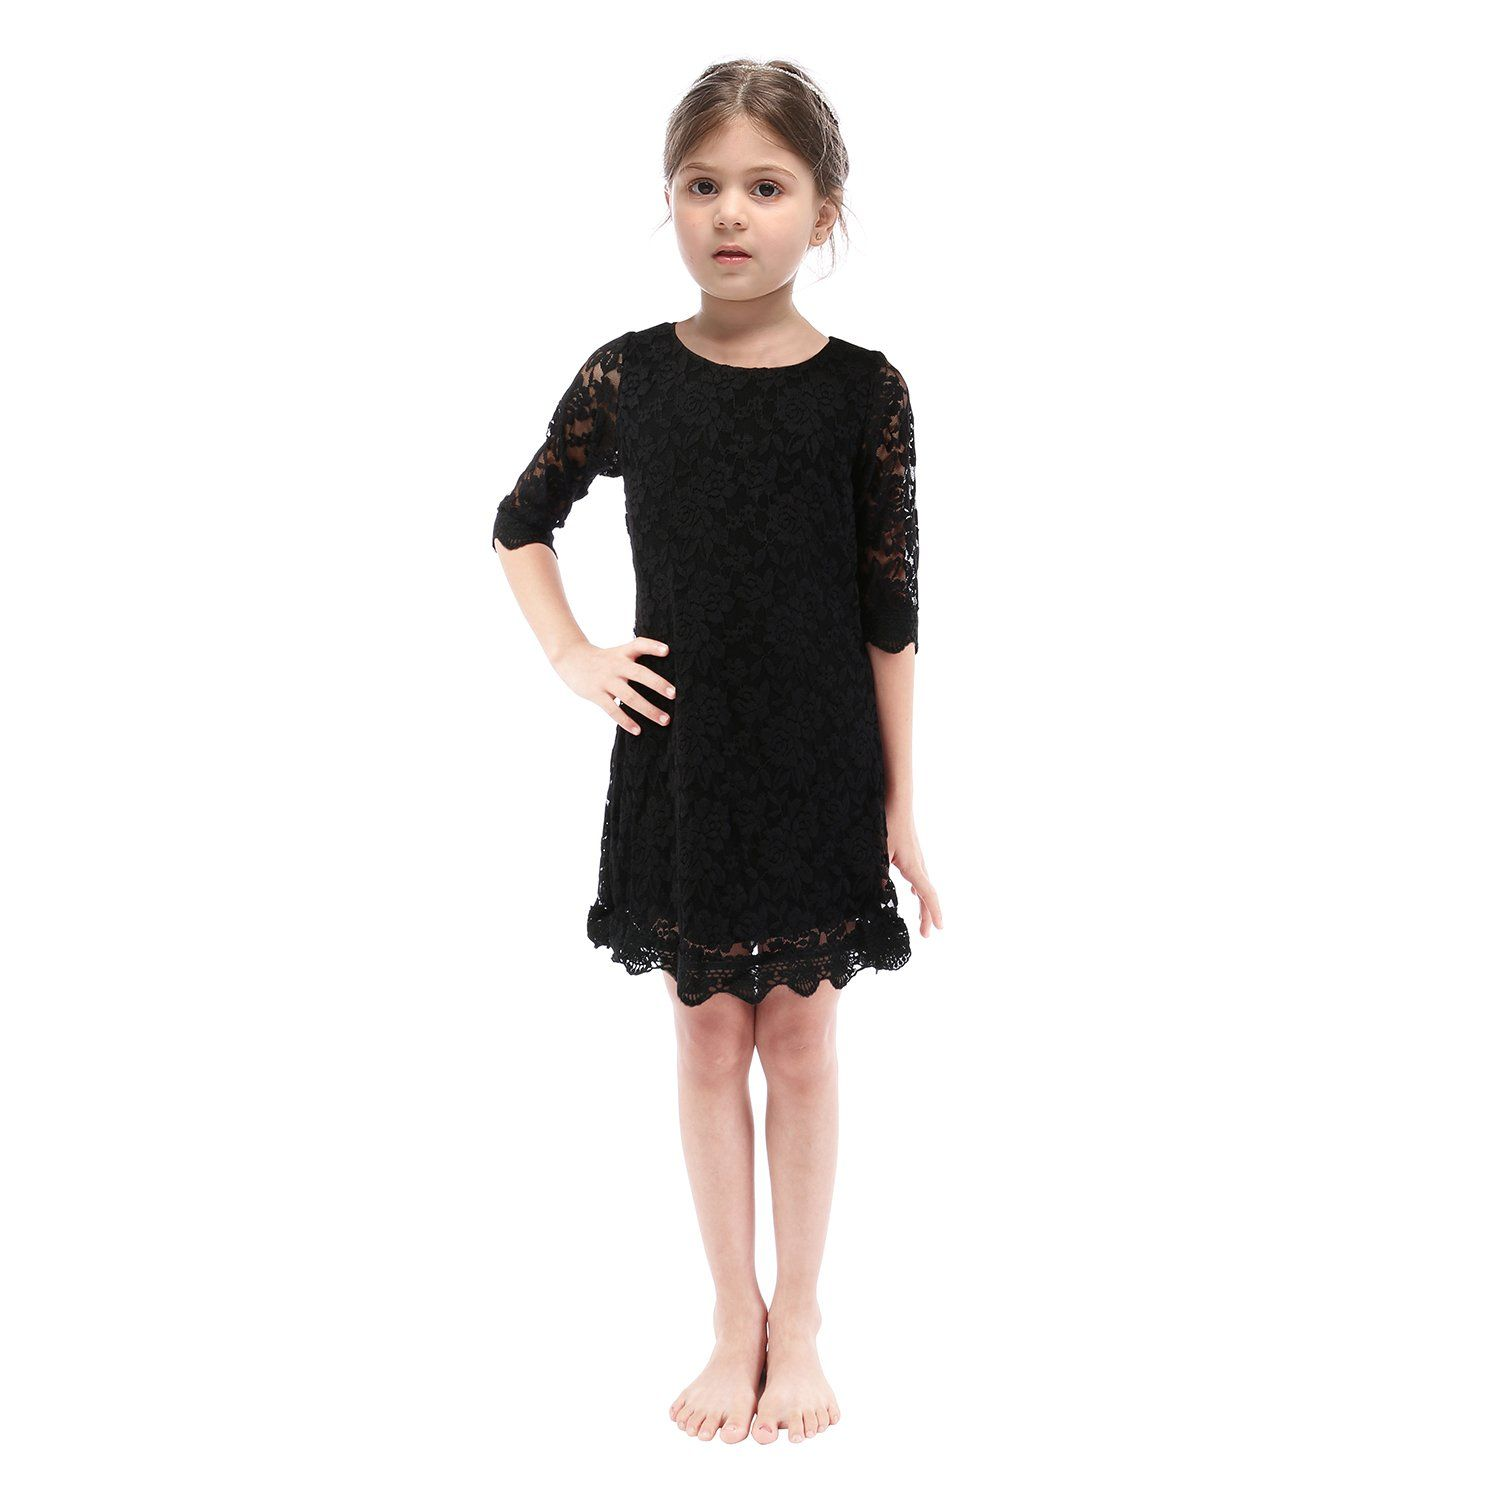 Lilytots Rustic Flower Girls Lace Vintage Wedding Party Dress With 3 4 Sleeves 5t Black Products Details Best Dress For Girl Vintage Wedding Party Dresses [ 1500 x 1500 Pixel ]